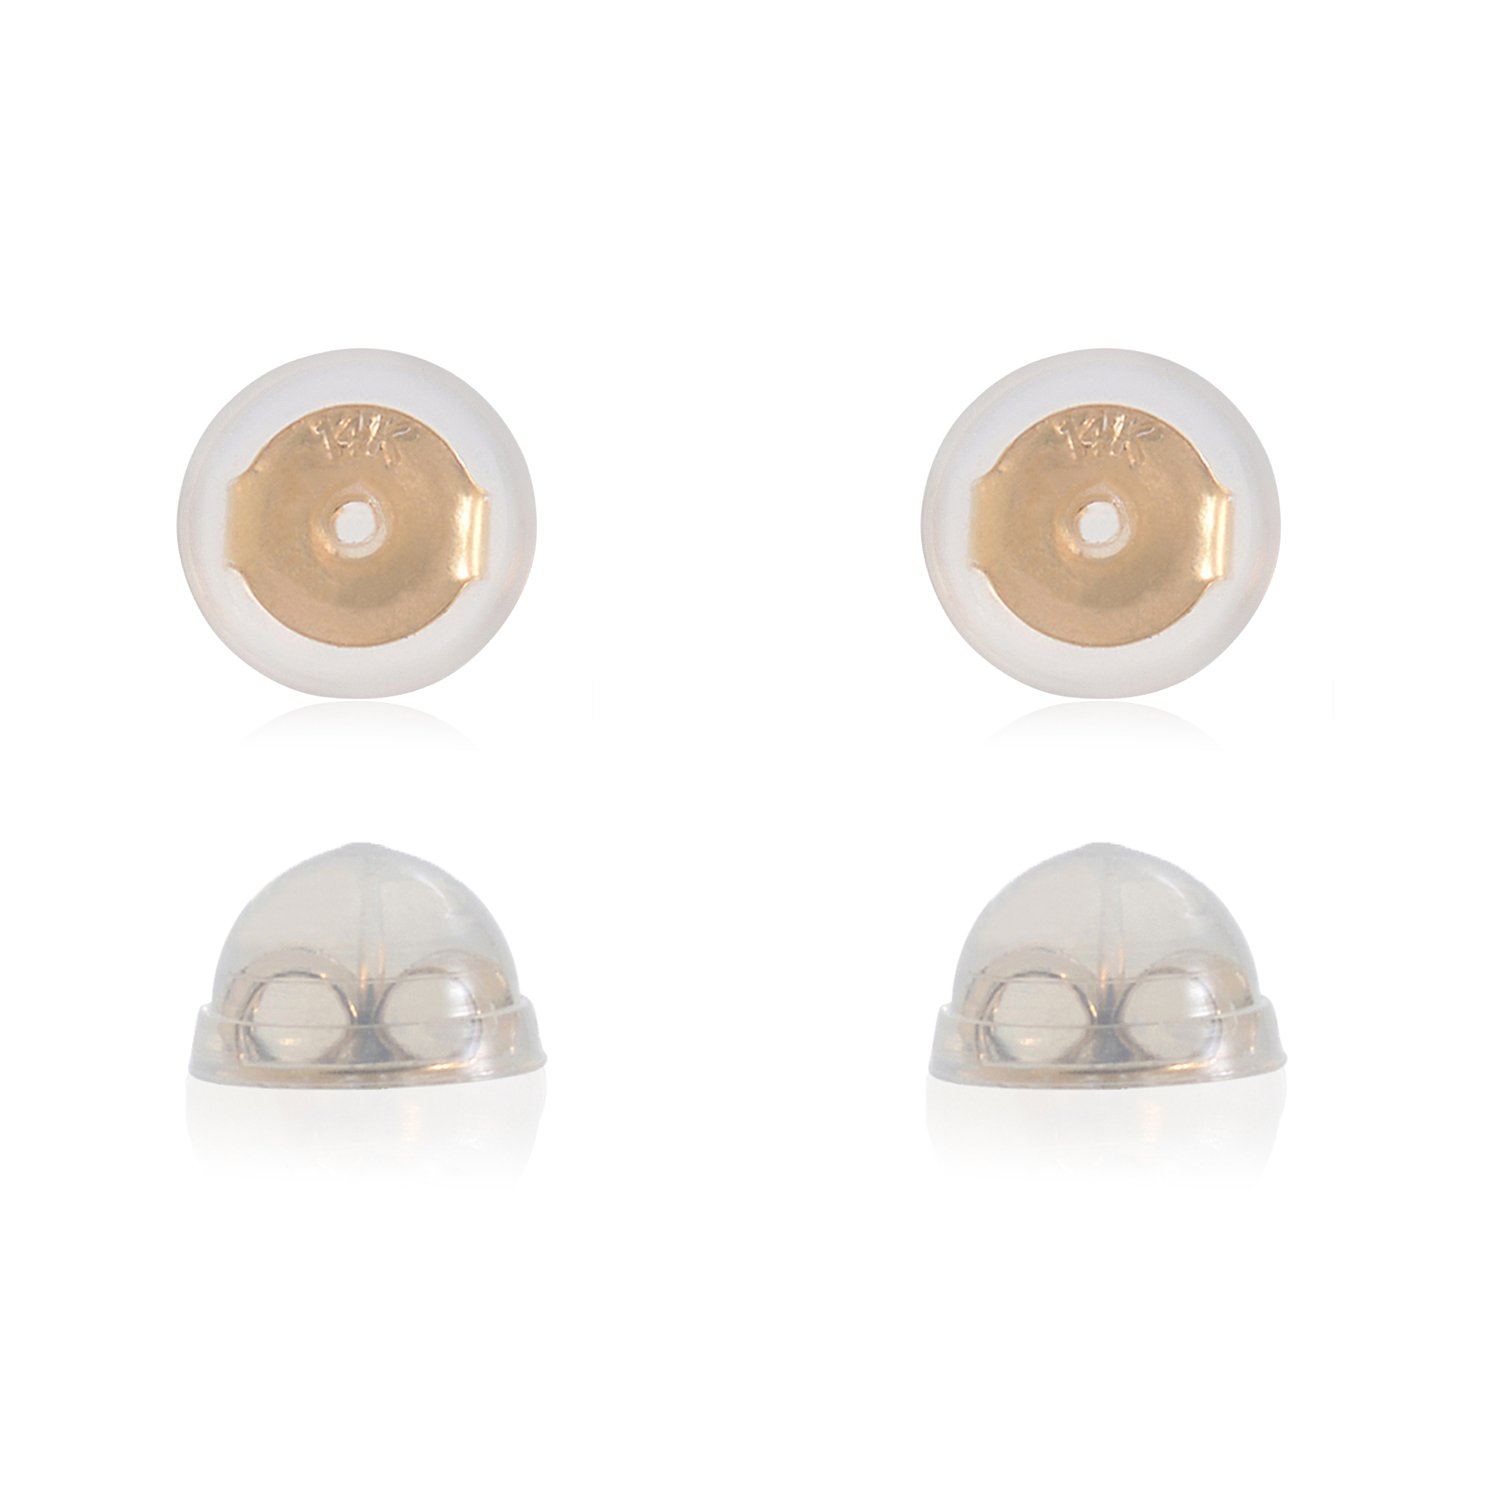 Universal EZback Earring Backs Soft Clear Silicone and 14k Yellow Gold Small 2 Pairs by UNIVERSAL EZ BACK